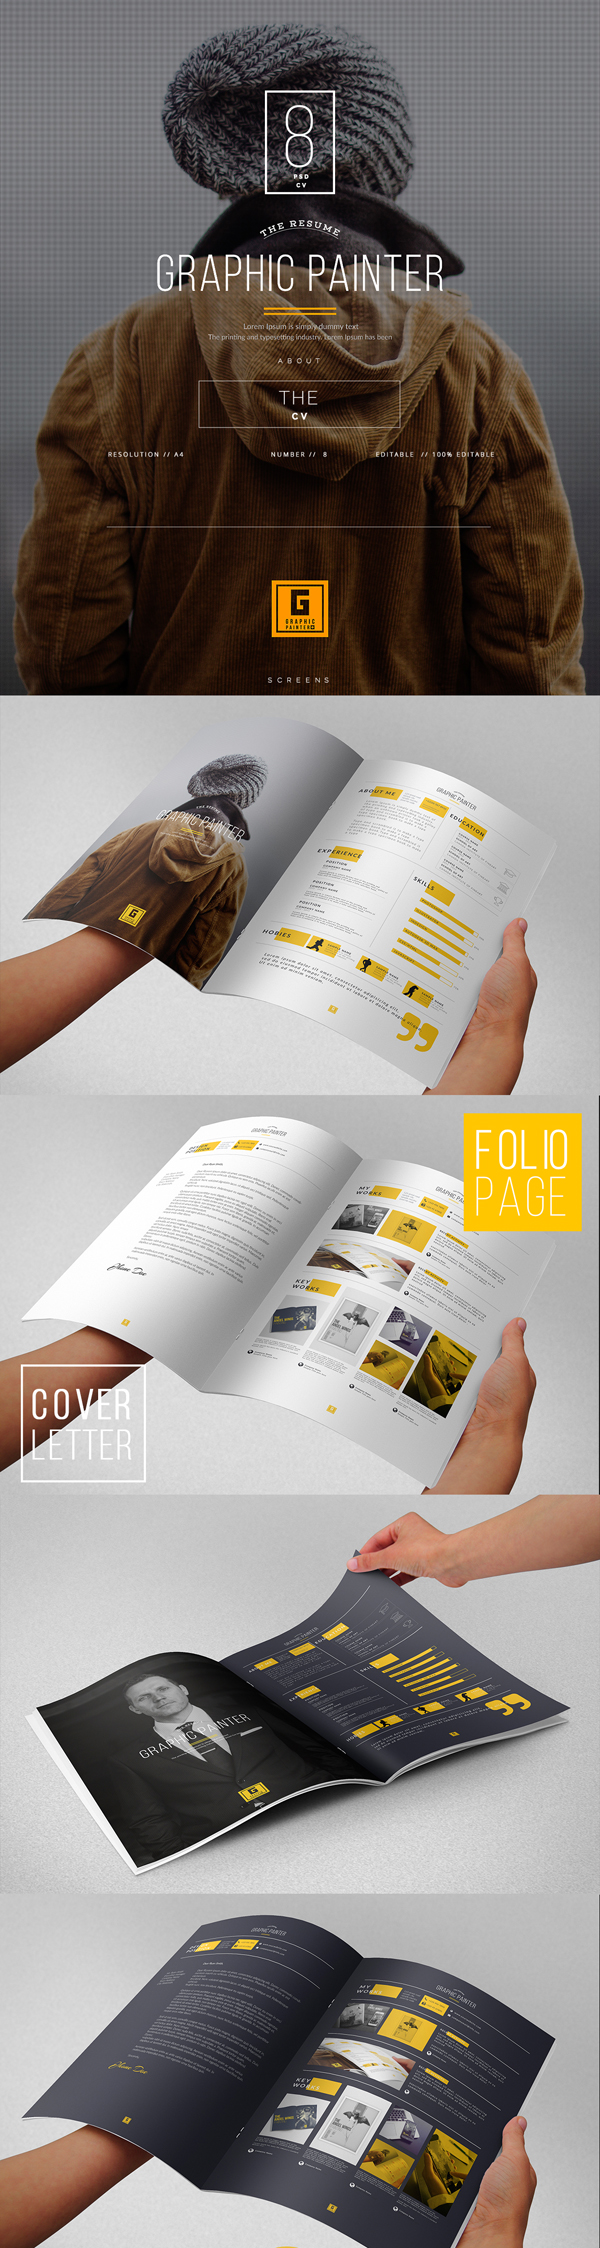 50 Best Free PSD Files for Designers - 1